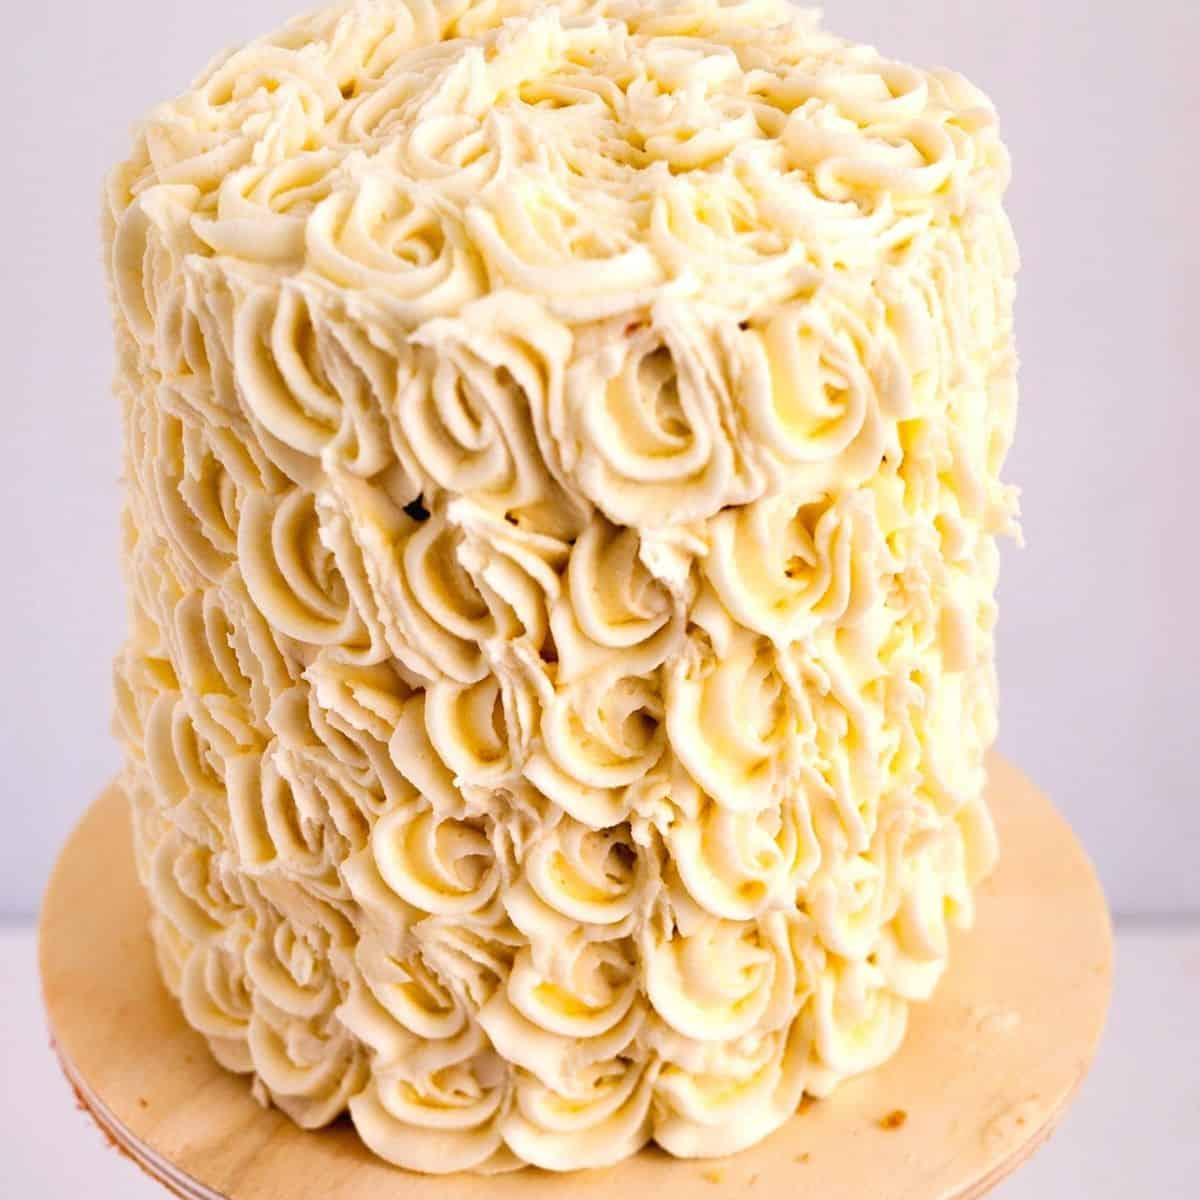 Cake Frosted with Italian frosting.